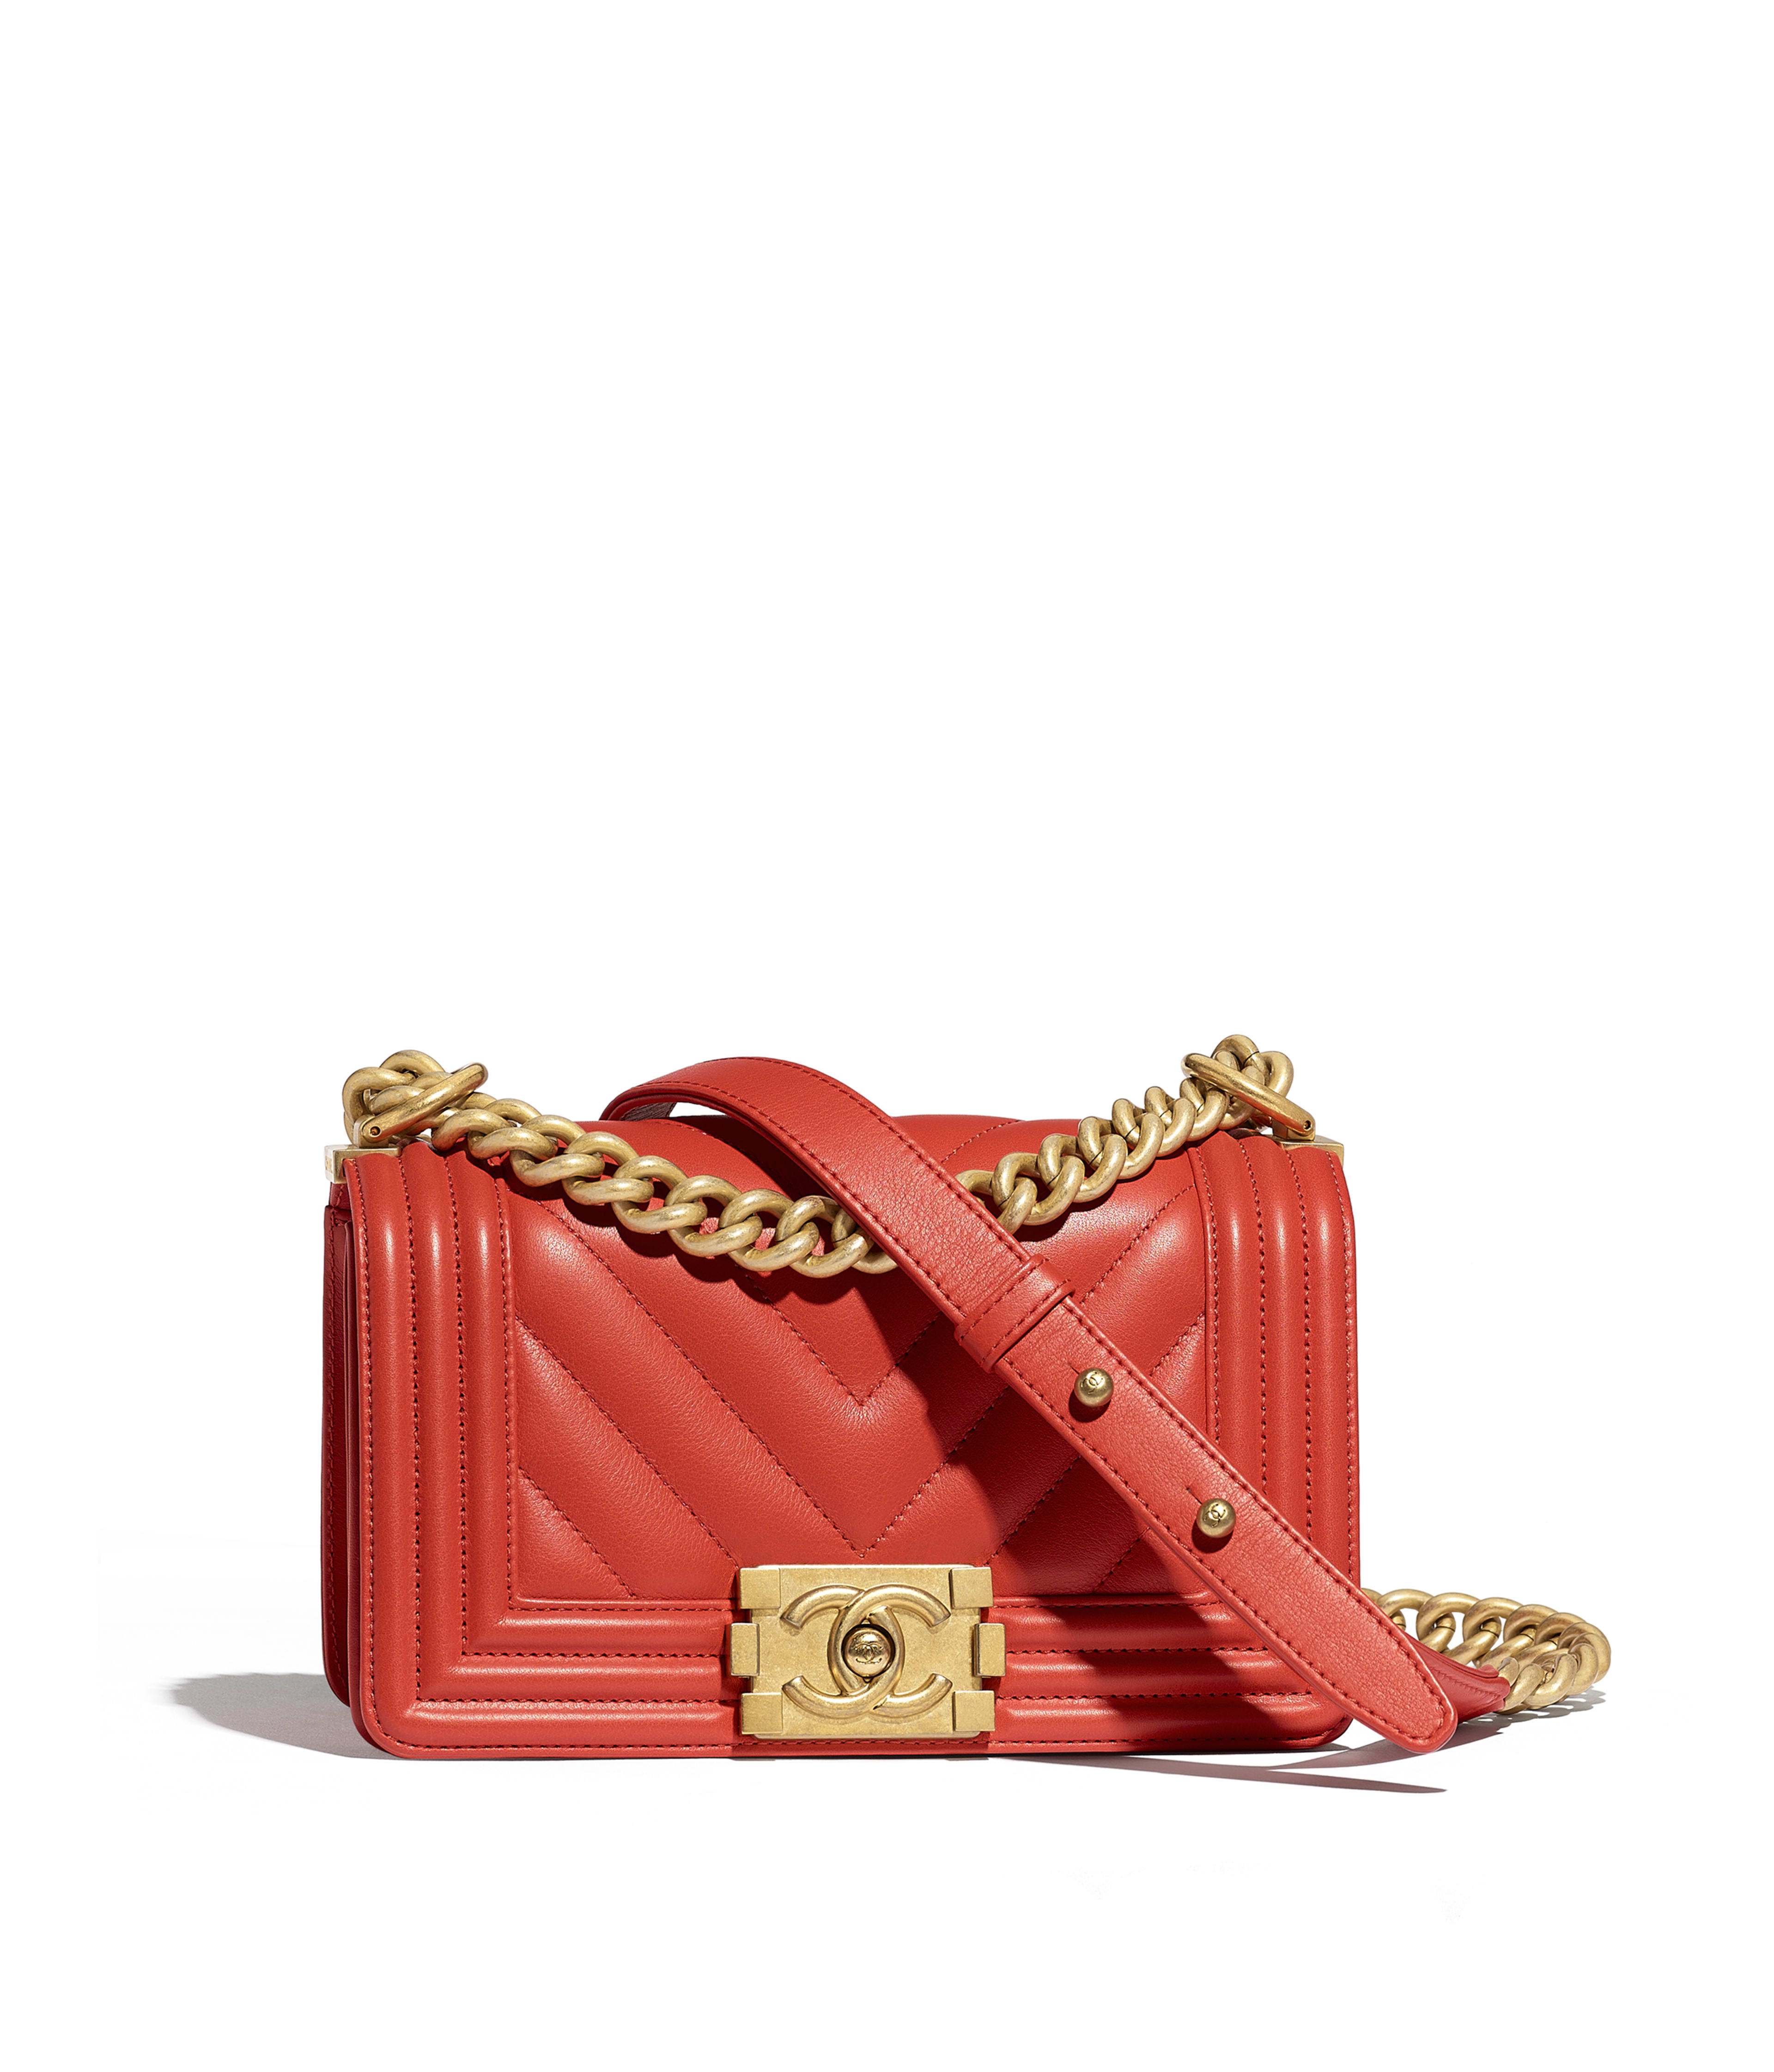 3eb87d1626ad Small BOY CHANEL Handbag Calfskin & Gold-Tone Metal, Red Ref.  A67085Y822665B651